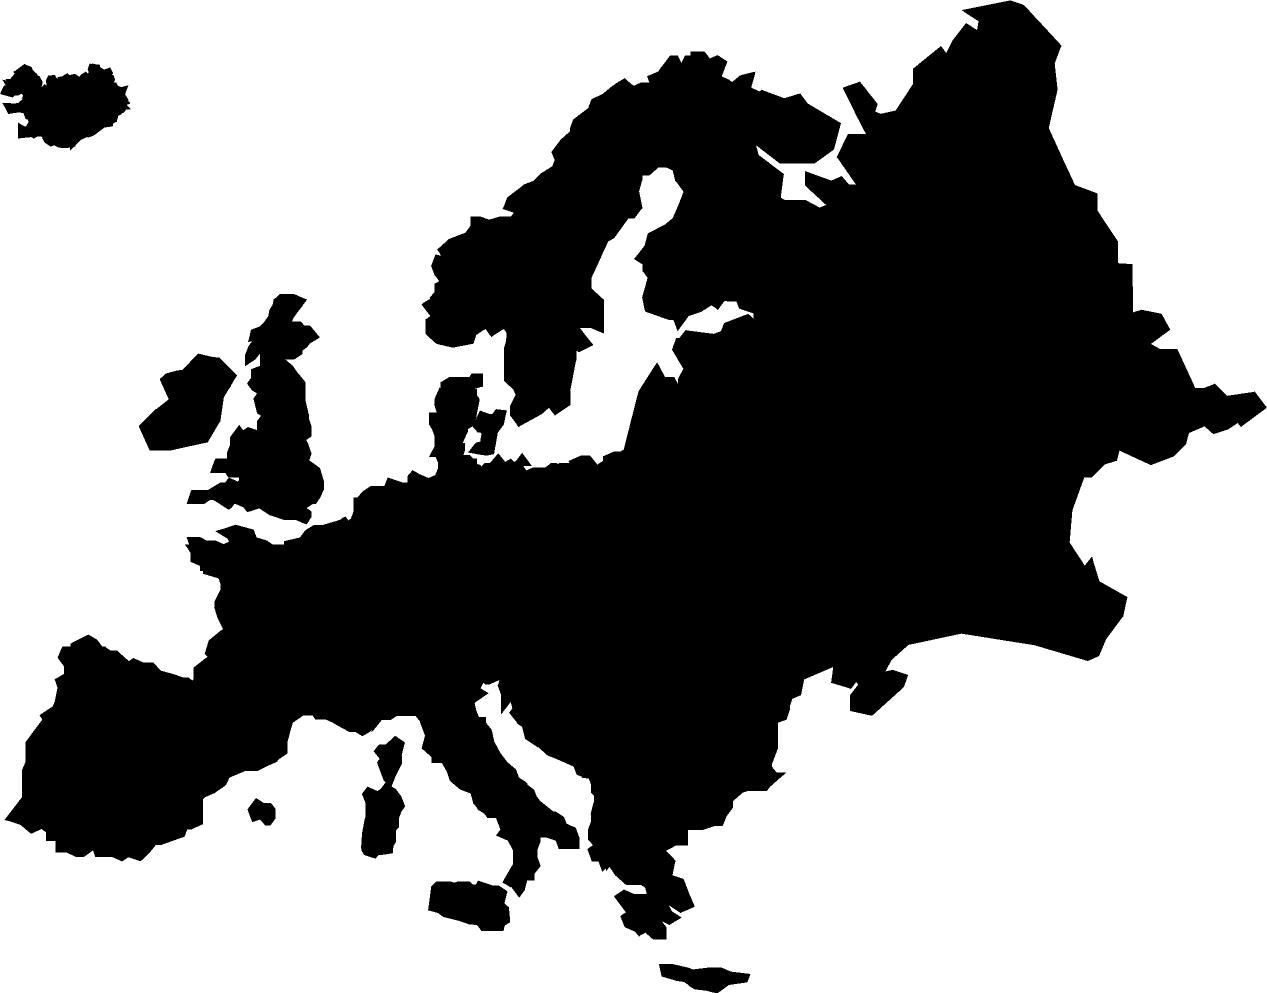 ... World Map Icon, Icon Map Europe Countries and Europe Map Clip Art